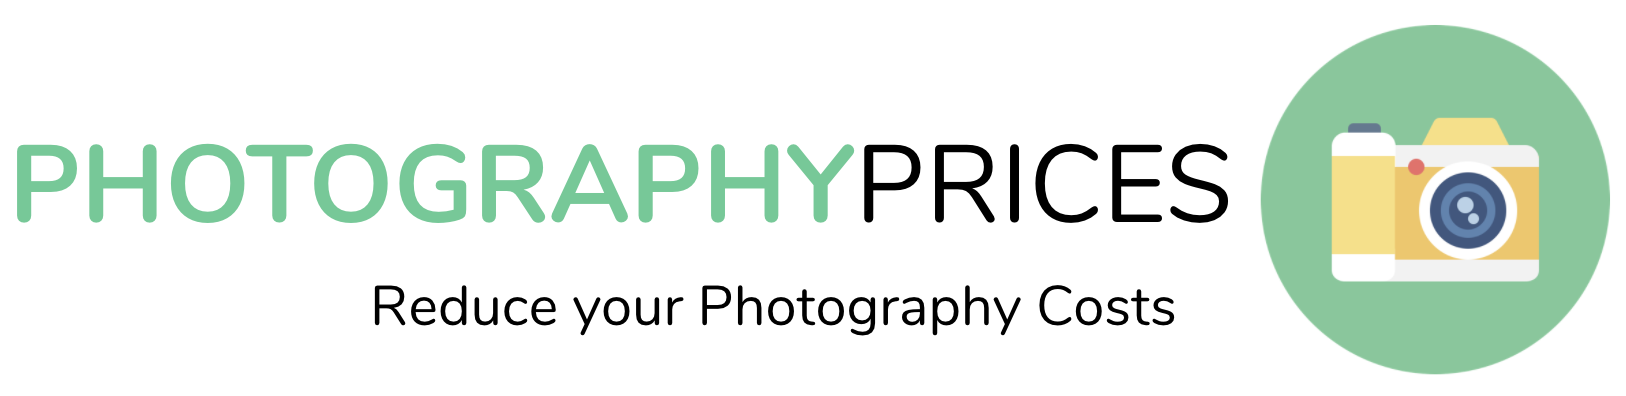 photographyprices.co.uk